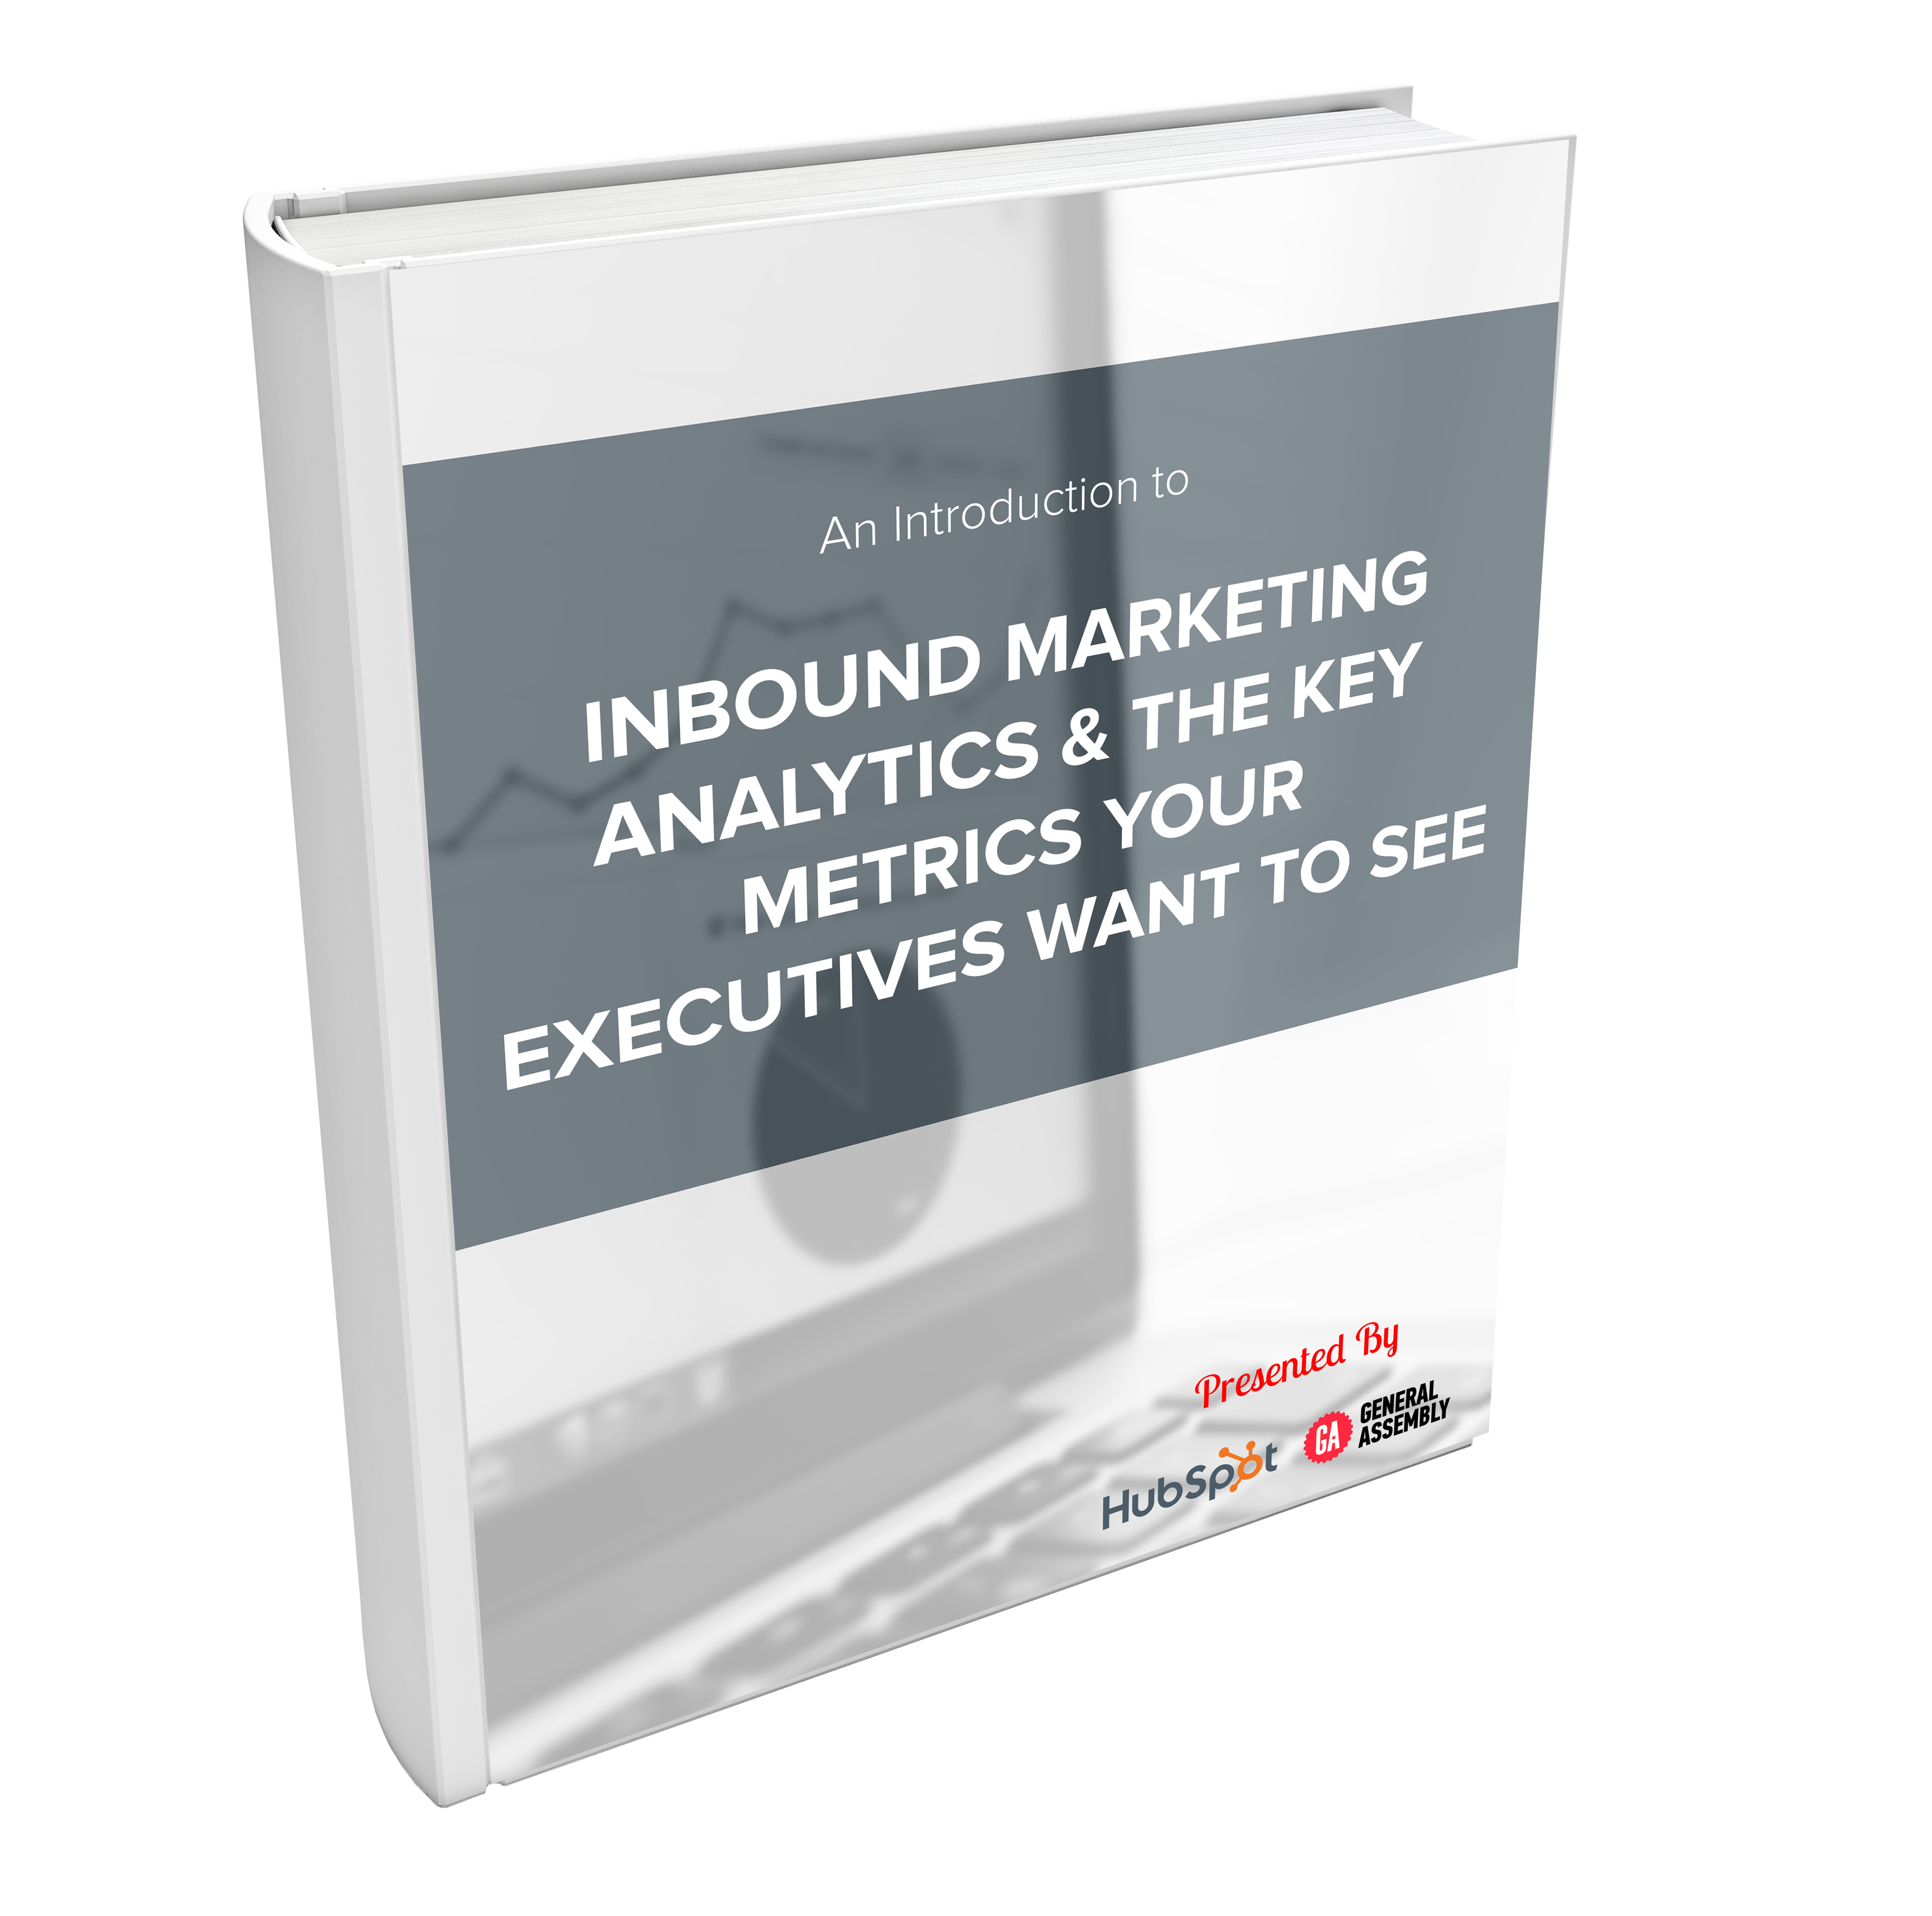 Introduction to Marketing Analytics & the Key Metrics Your Executives Want to See